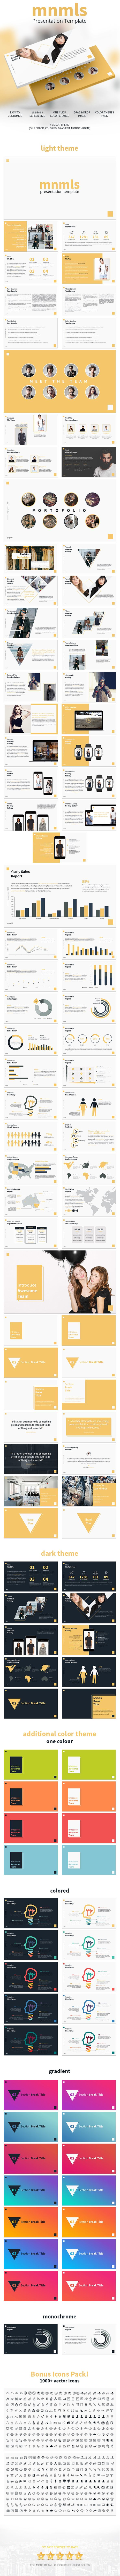 748 best images about powerpoint templates on pinterest